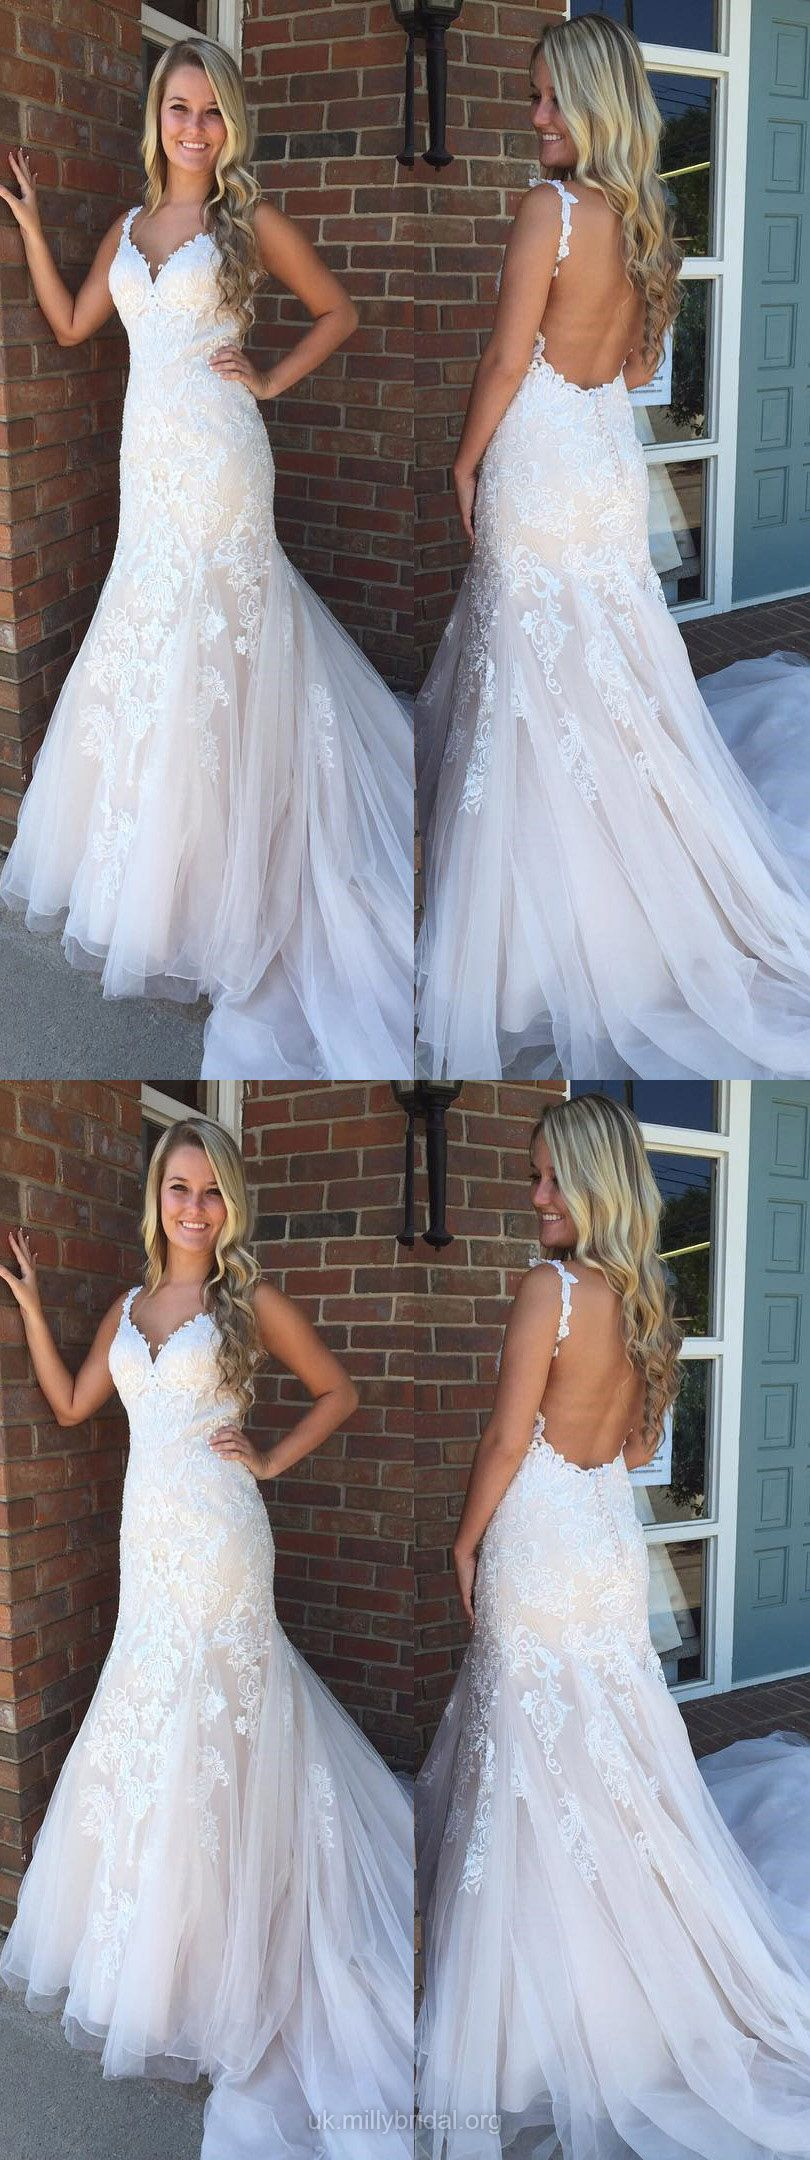 Cheap wedding dresses for military brides  White Formal Dresses Mermaid Long Prom Dresses For Teens Lace